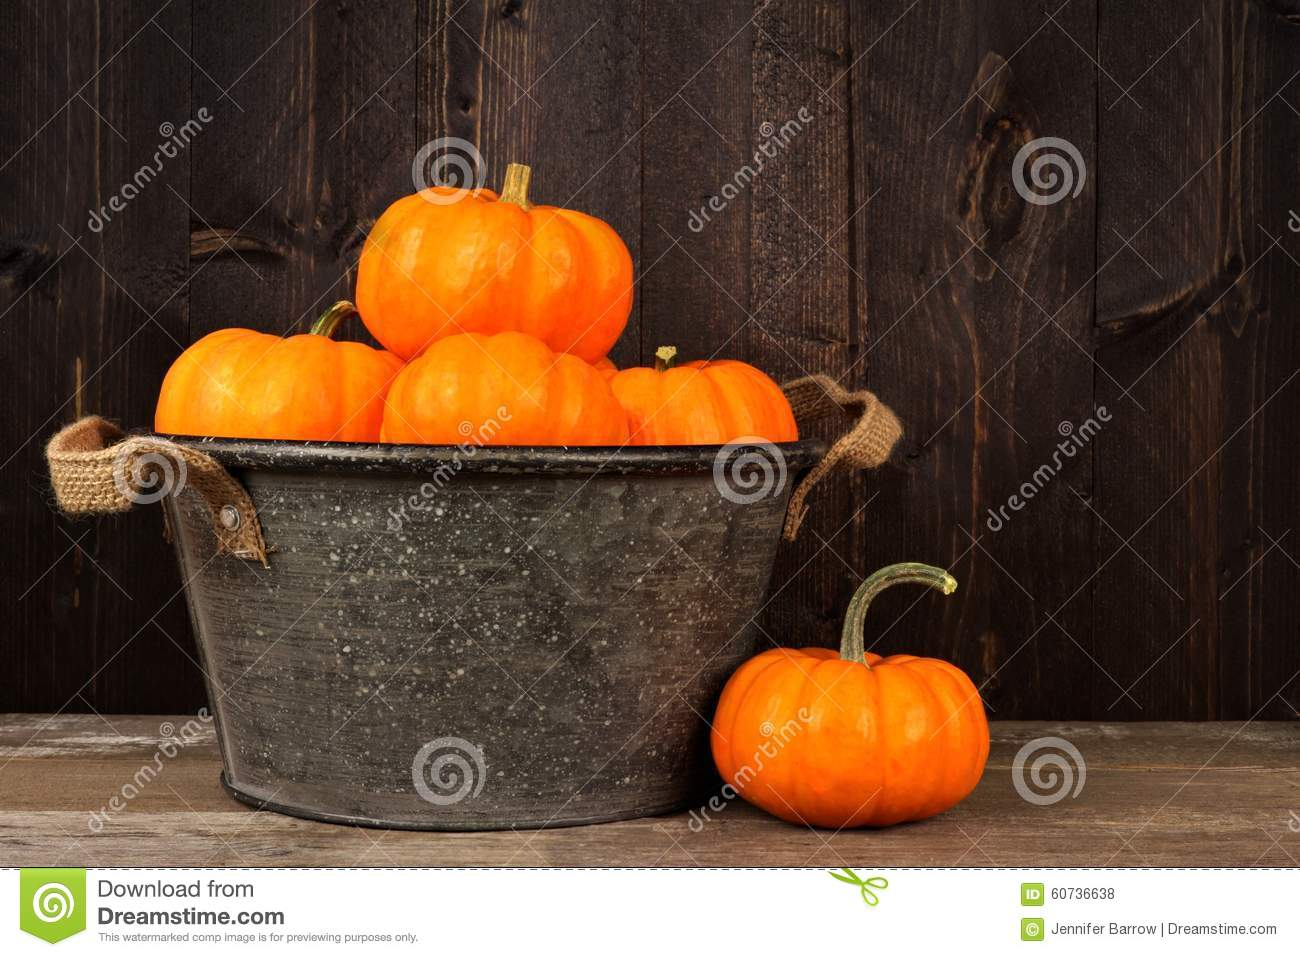 Tin harvest pail with autumn pumpkins over wood